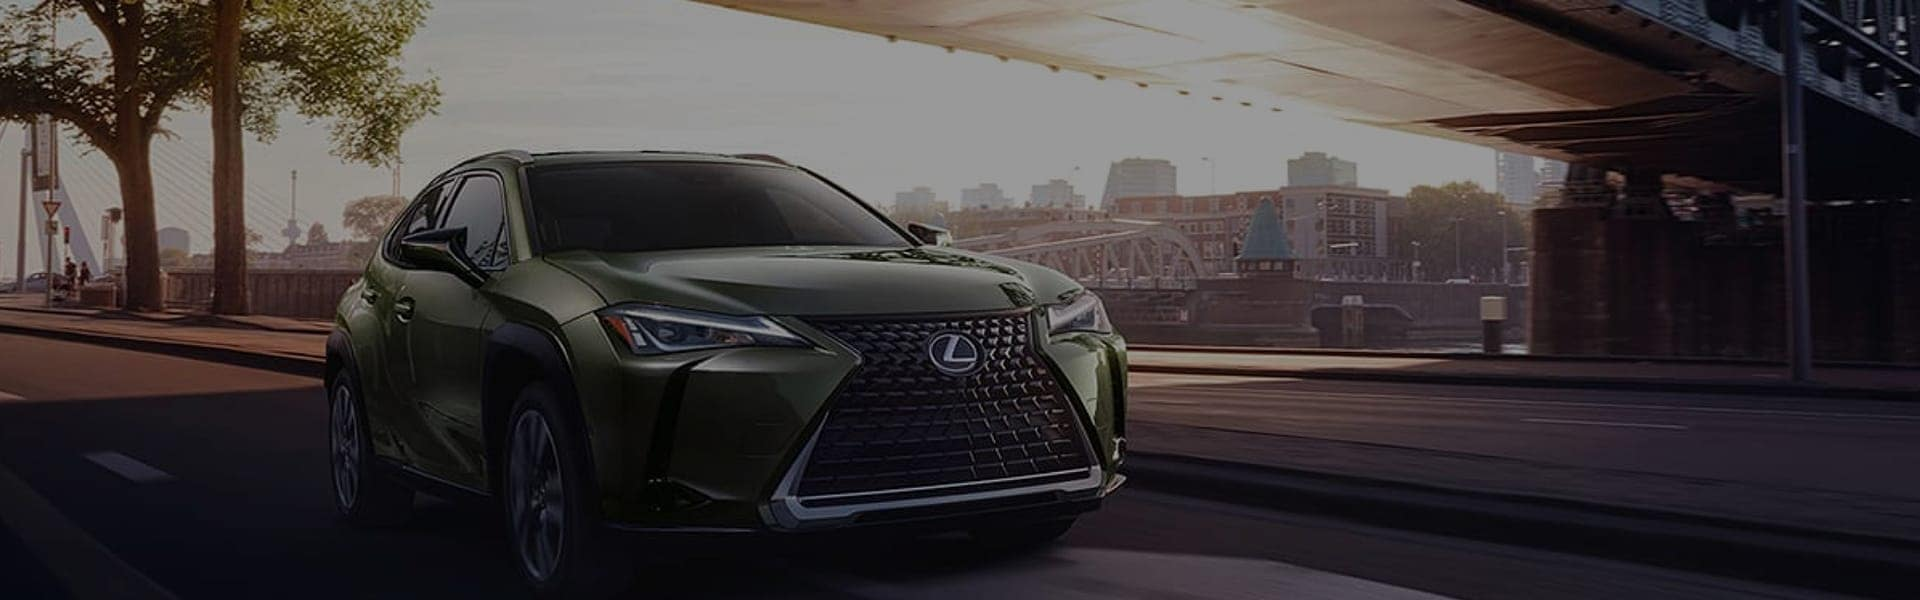 Welcome to Thompson Lexus Doylestown